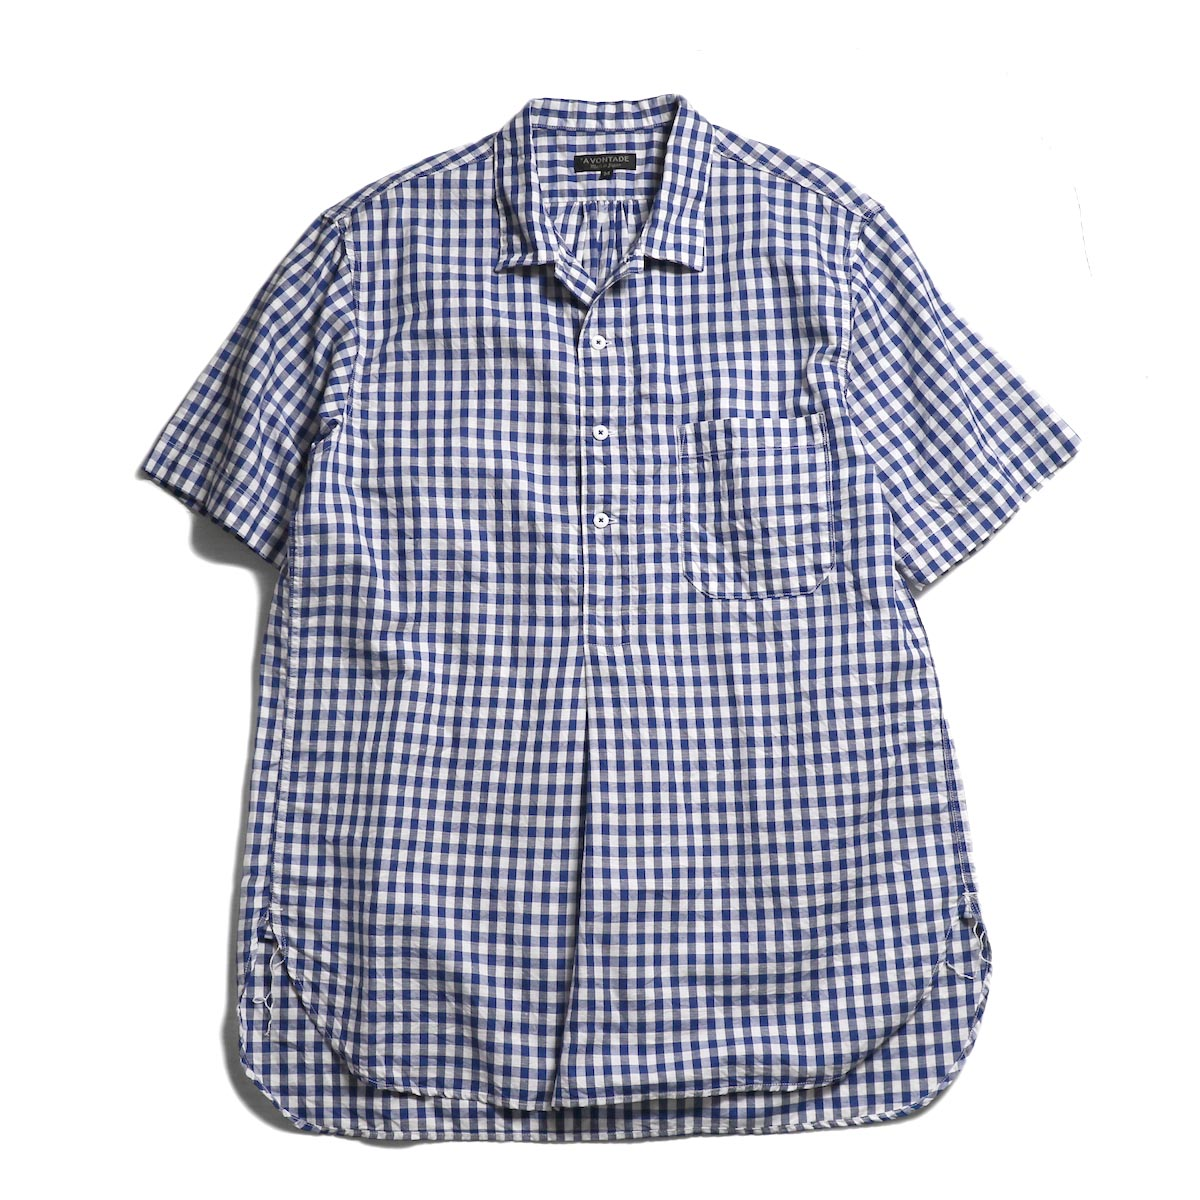 A VONTADE / Pullover Shirt S/S